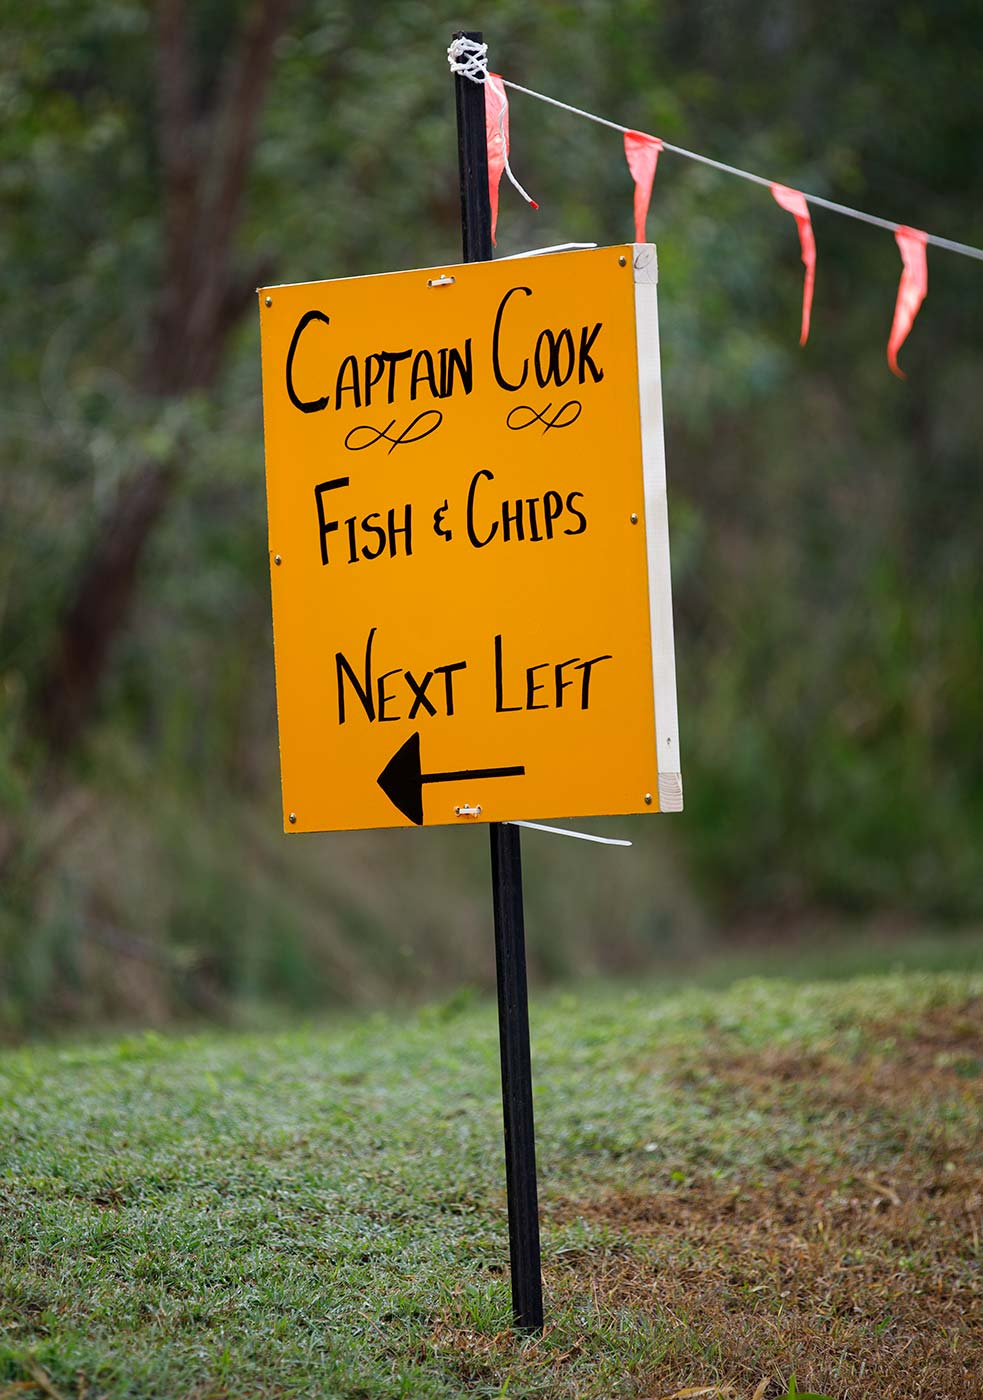 Colour photo of a yellow sign that reads 'CAPTAIN COOK / FISH AND CHIPS / NEXT LEFT'. - click to view larger image